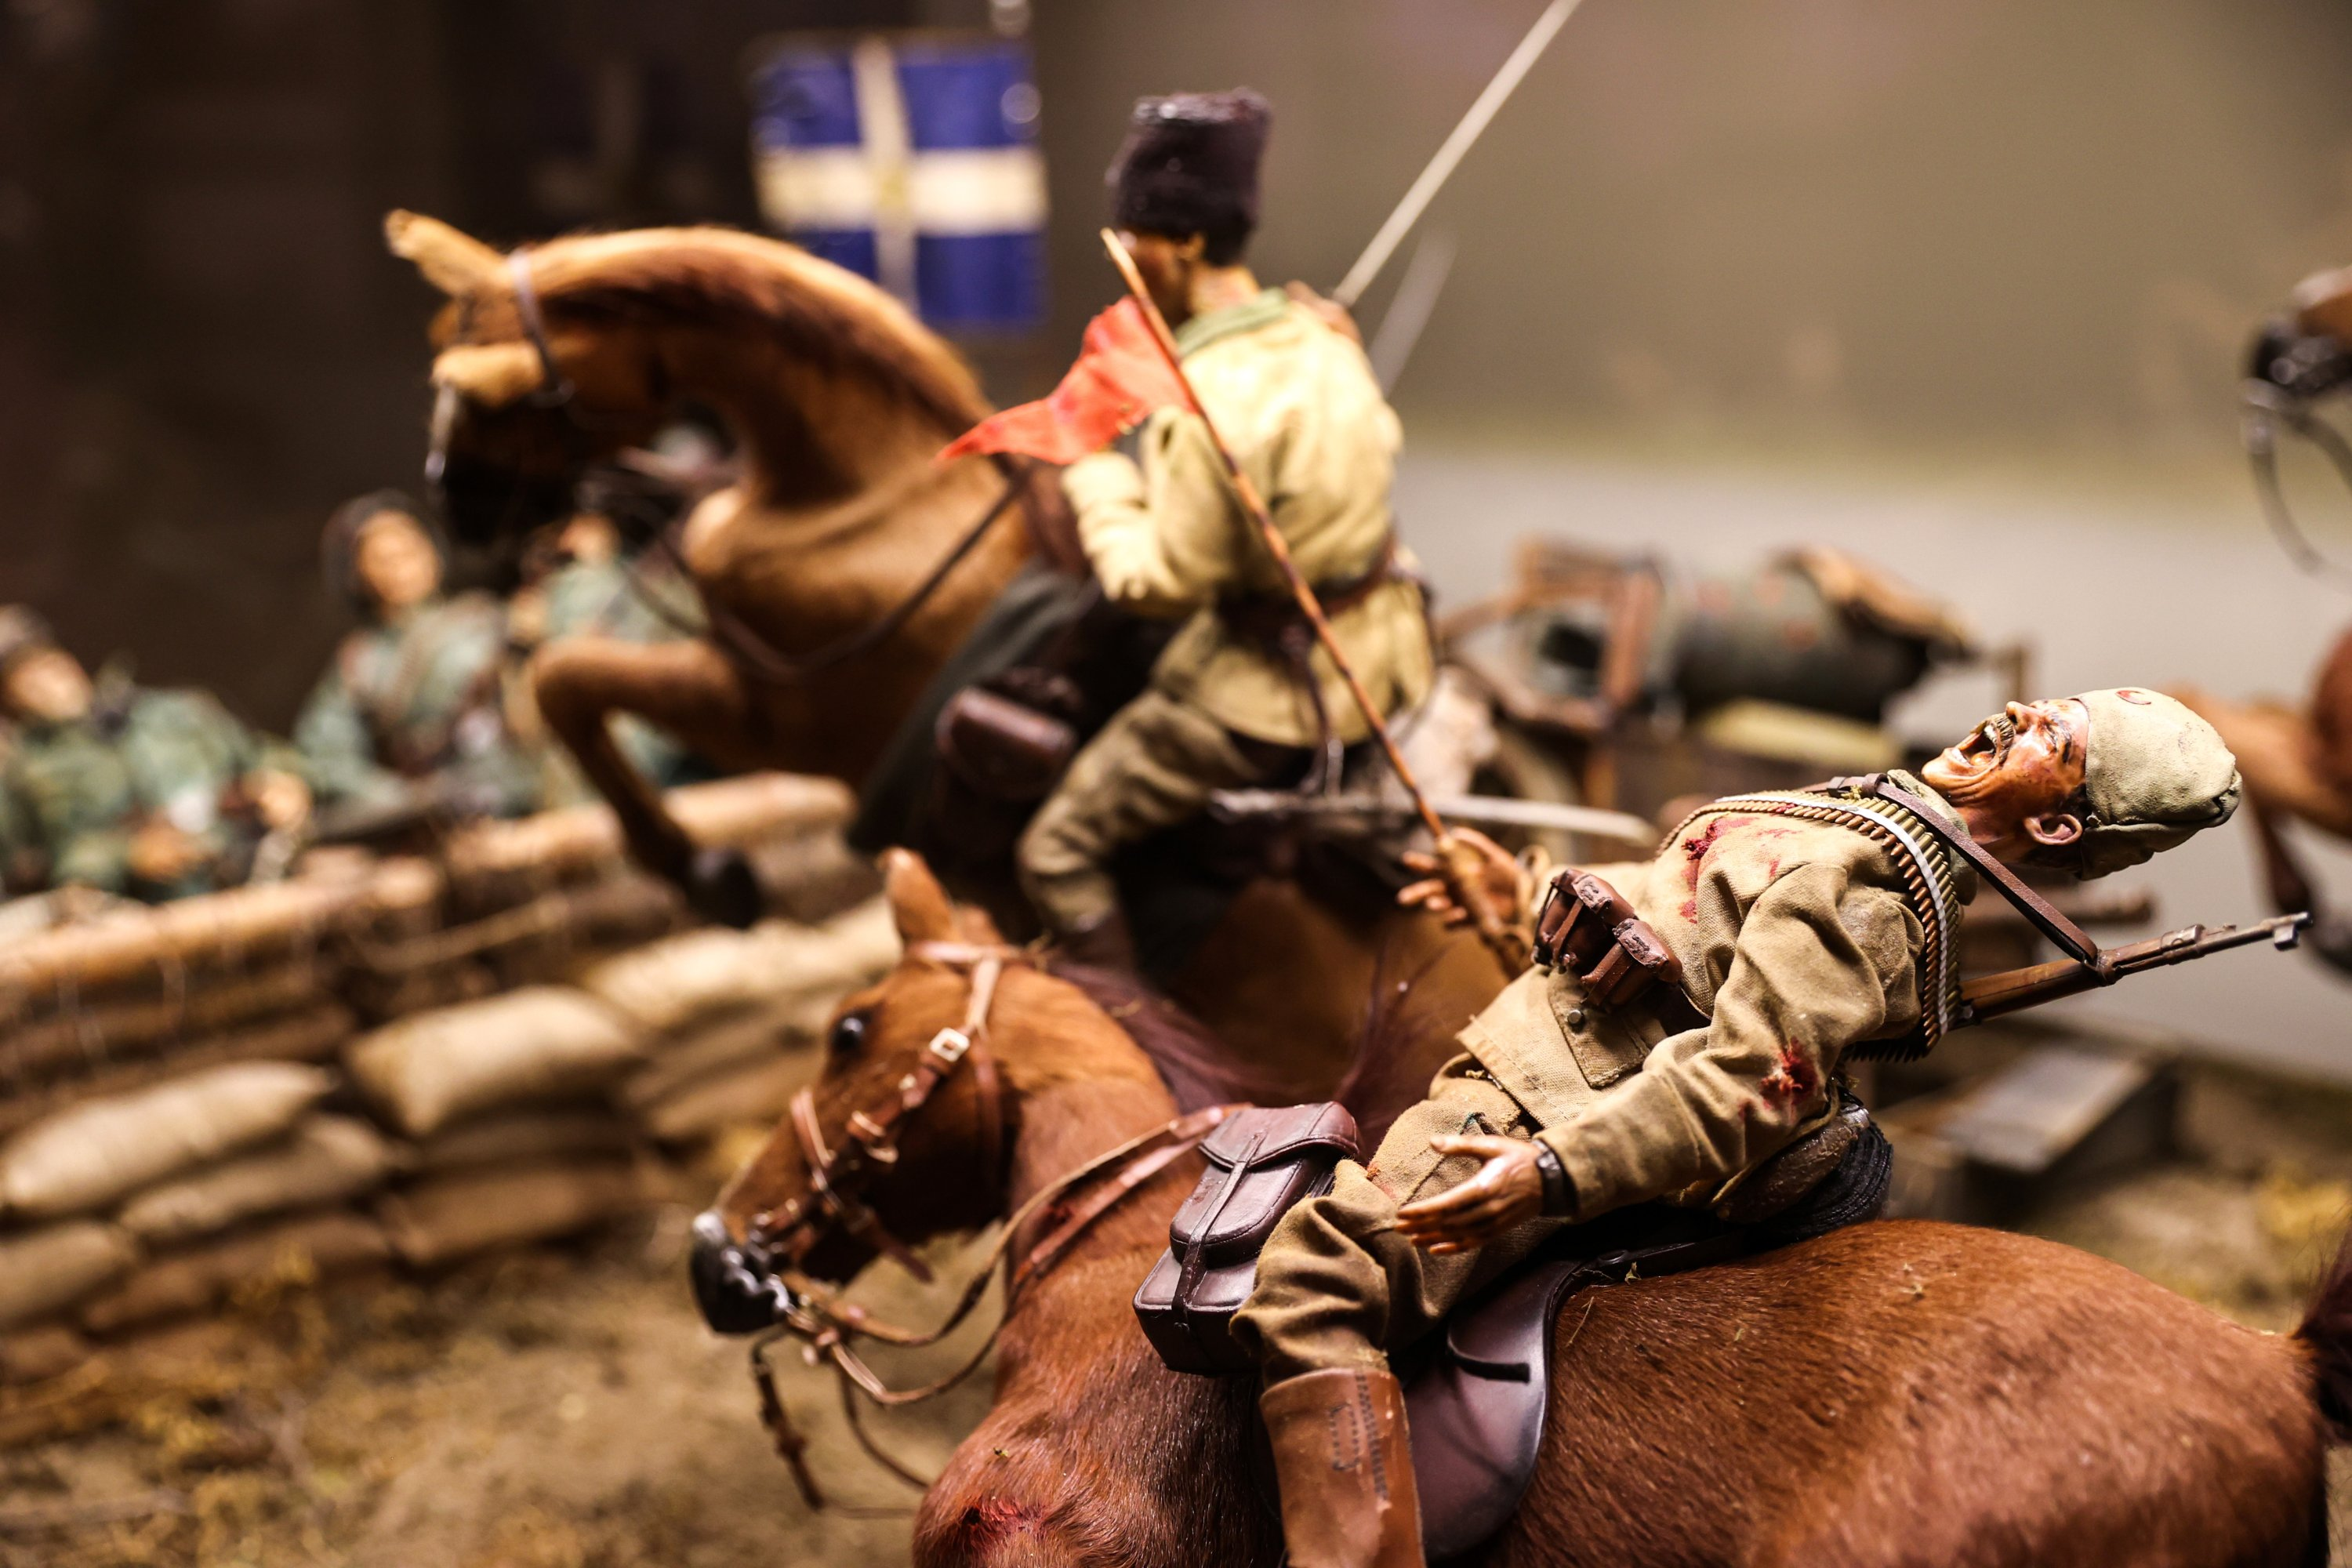 A diorama describing the War of Independence on display at the exhibition in the Istanbul Cinema Museum. (AA Photo)